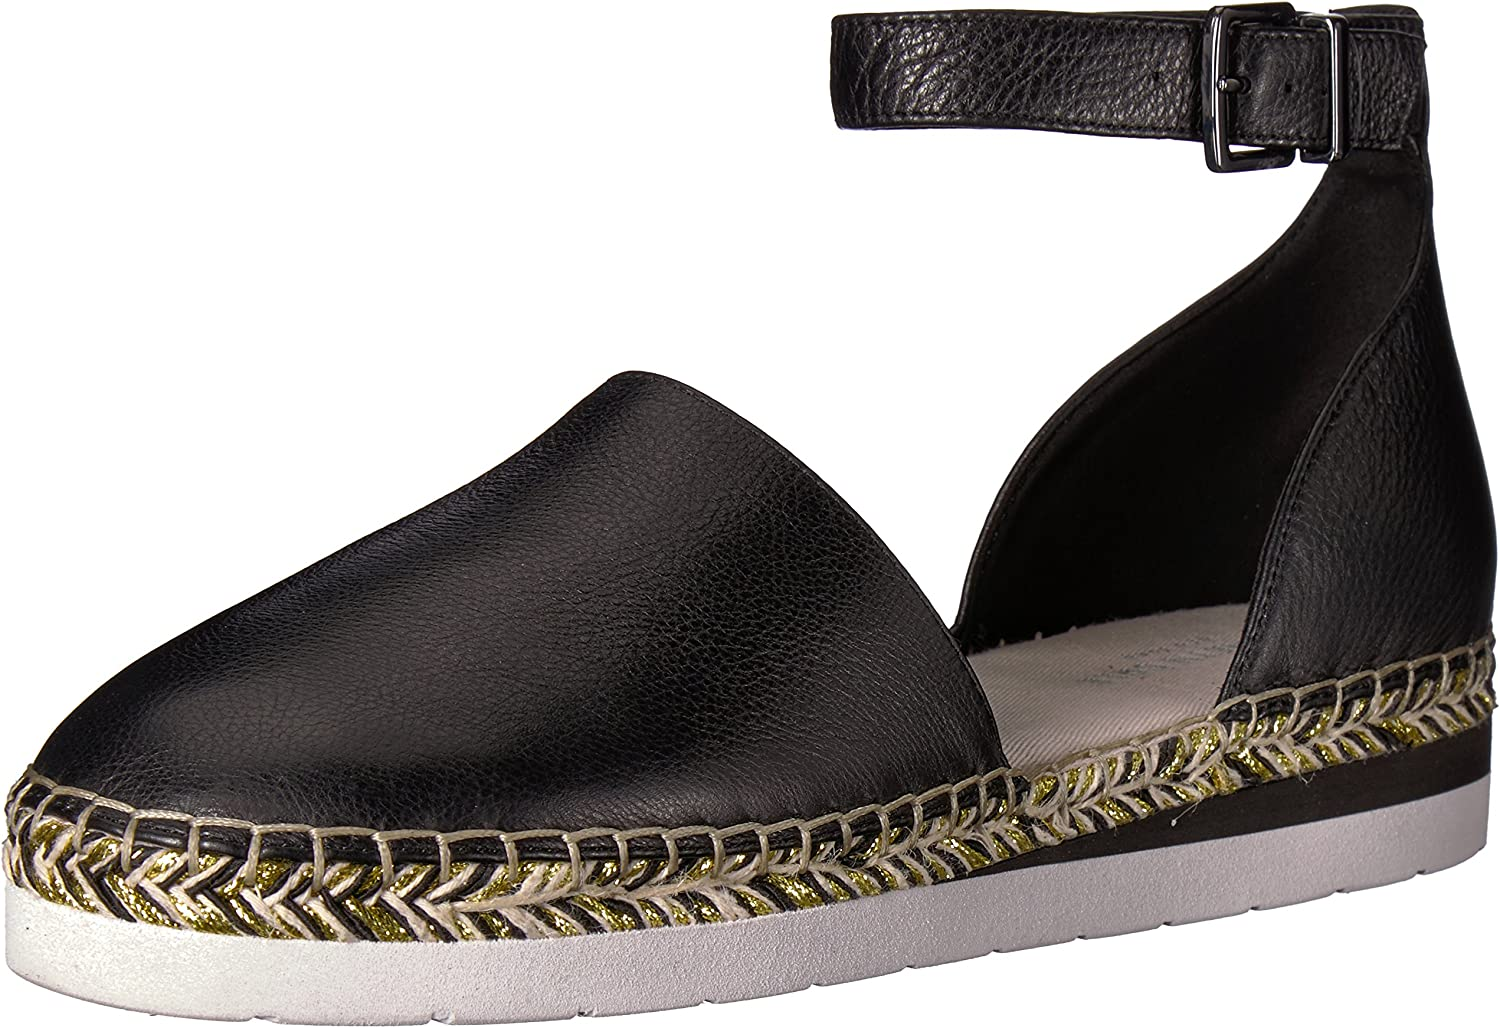 Kenneth Cole New York Womens Babbot Sporty Low Wedge Espadrille with Ankle Strap Espadrille Wedge Sandal